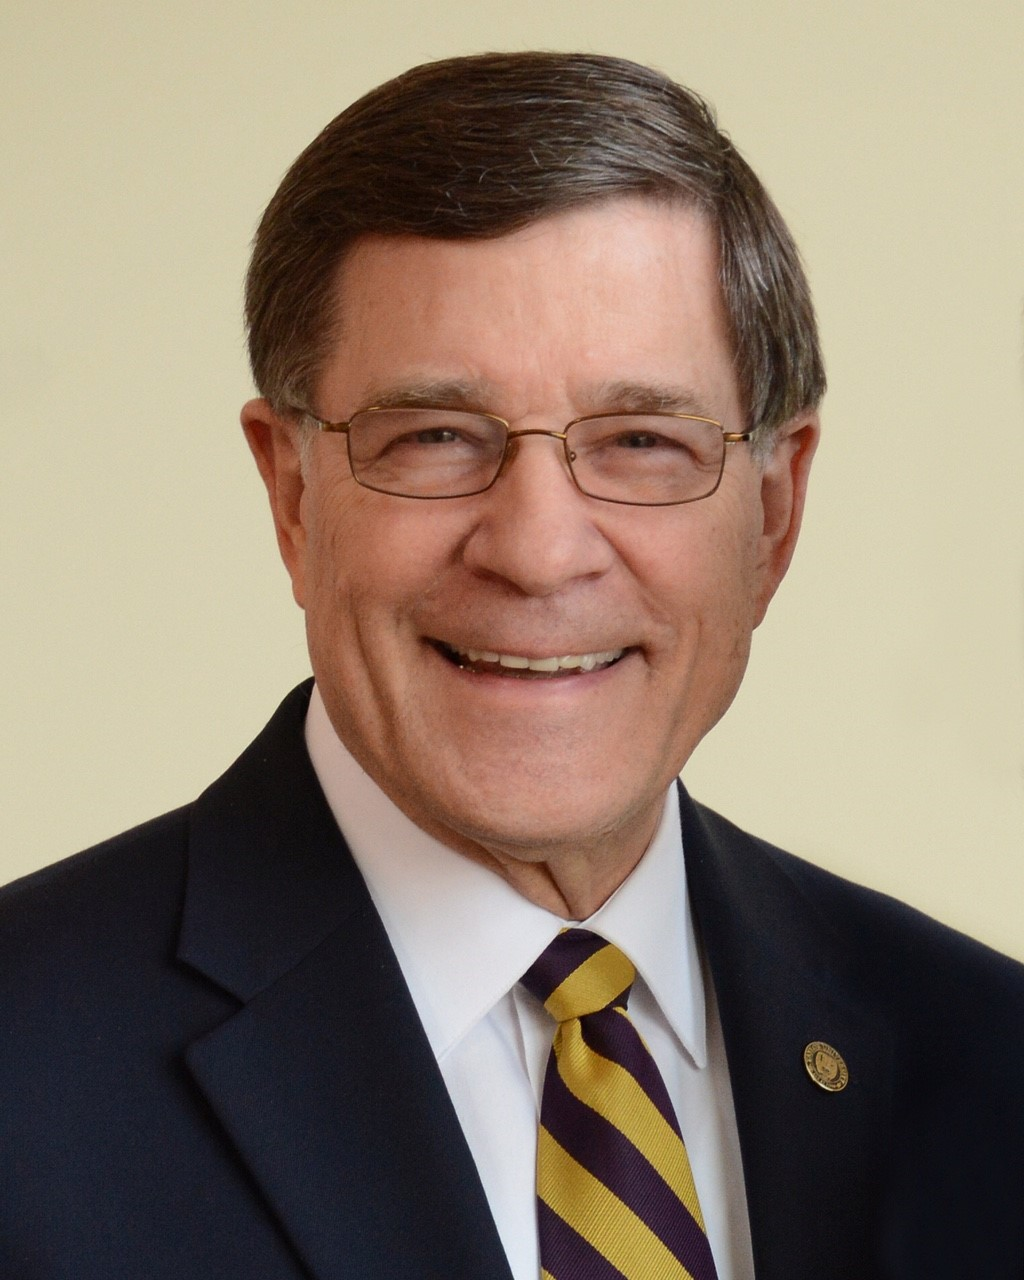 Eugene B. Habacker will be inducted into The Indiana Academy on October 15, 2018.